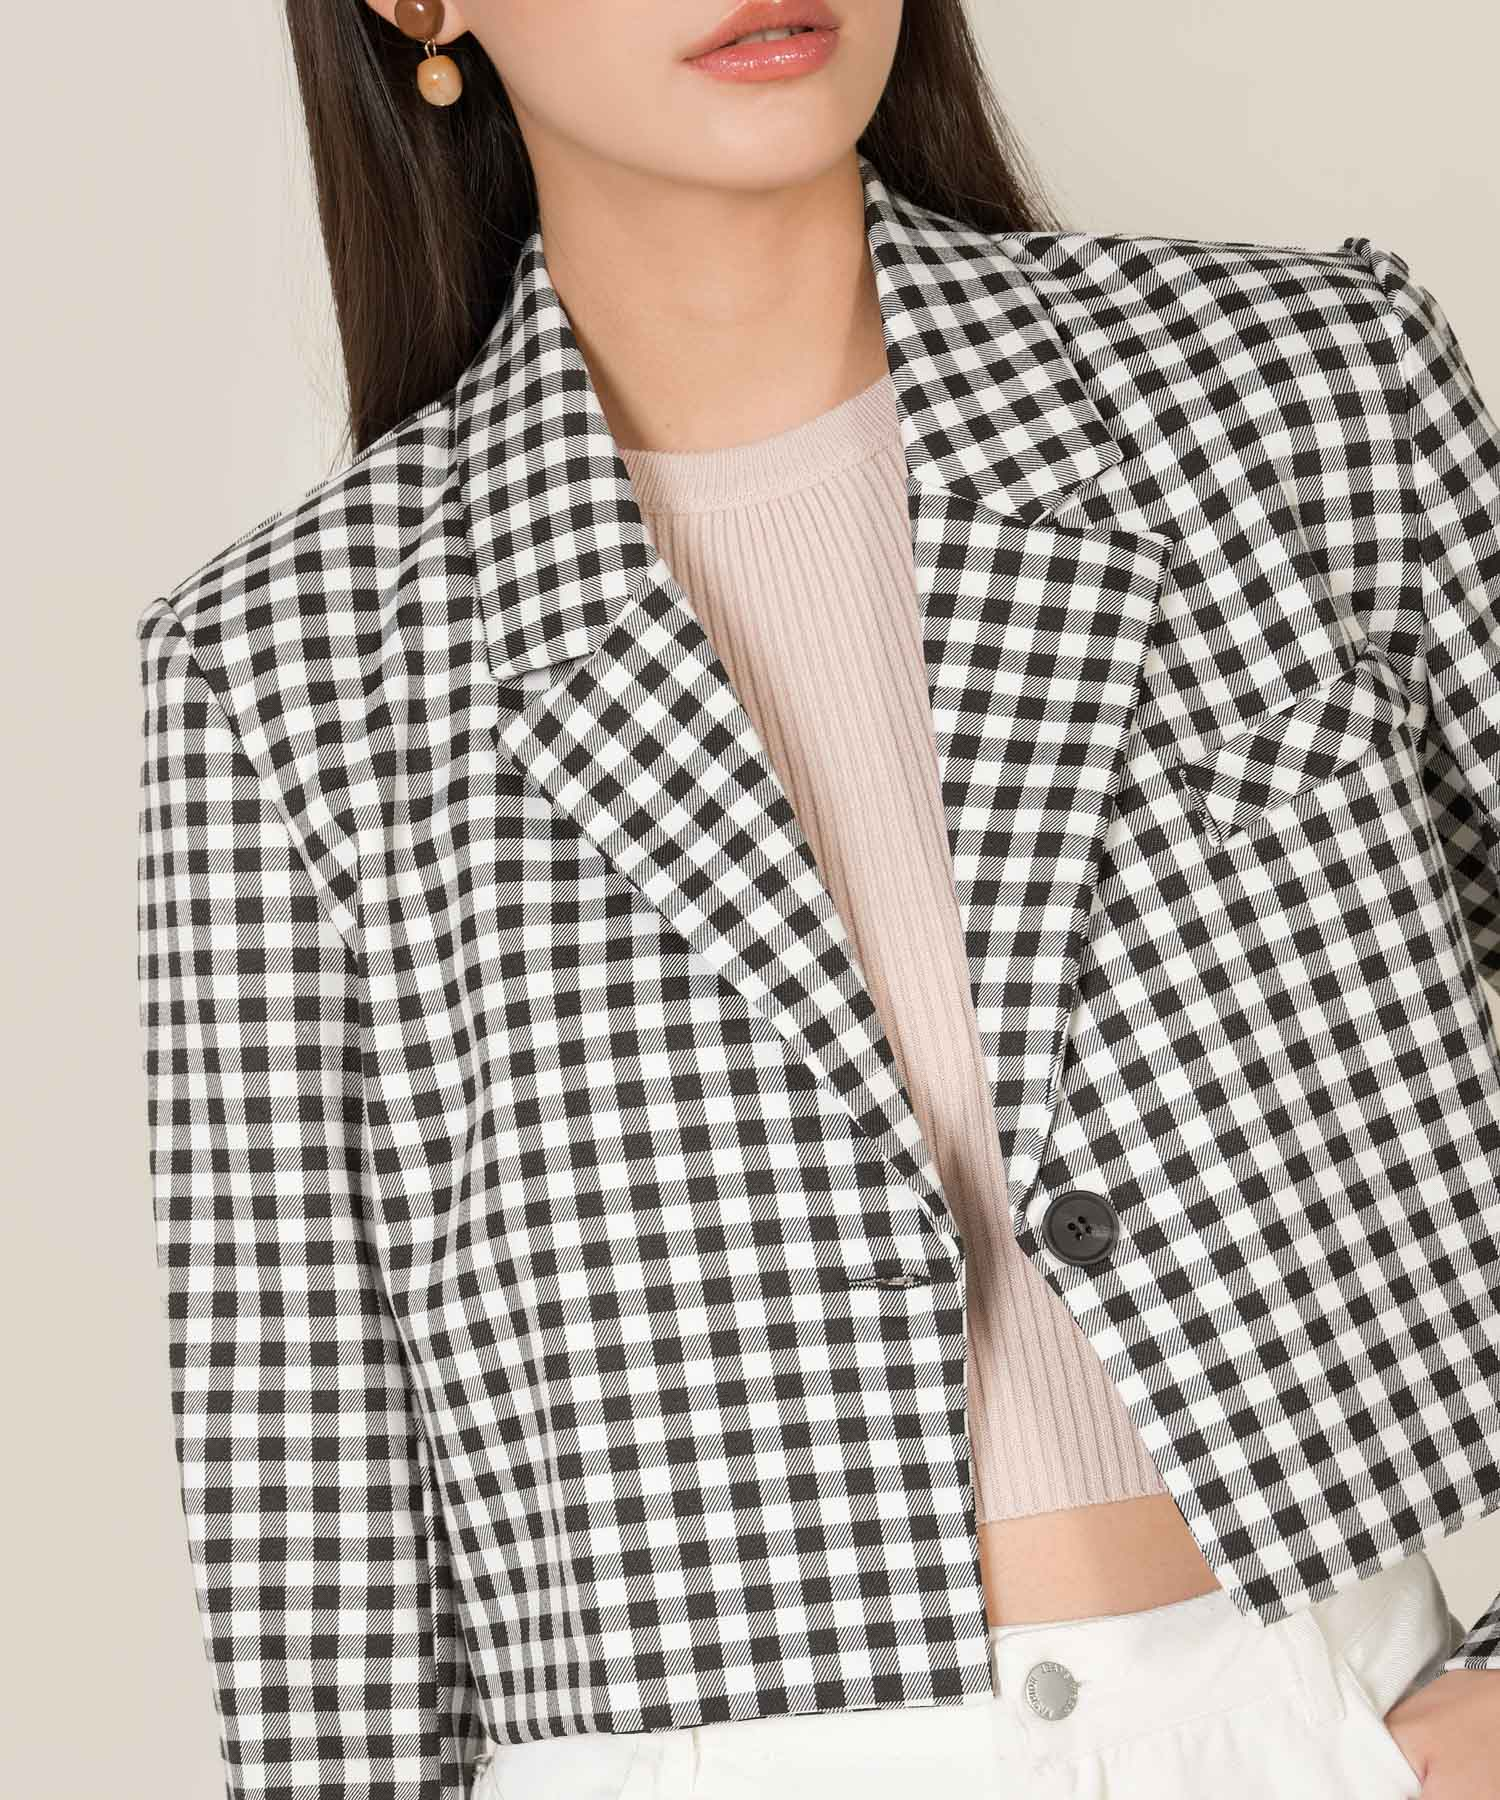 cher-gingham-cropped-jacket-monochrome-1